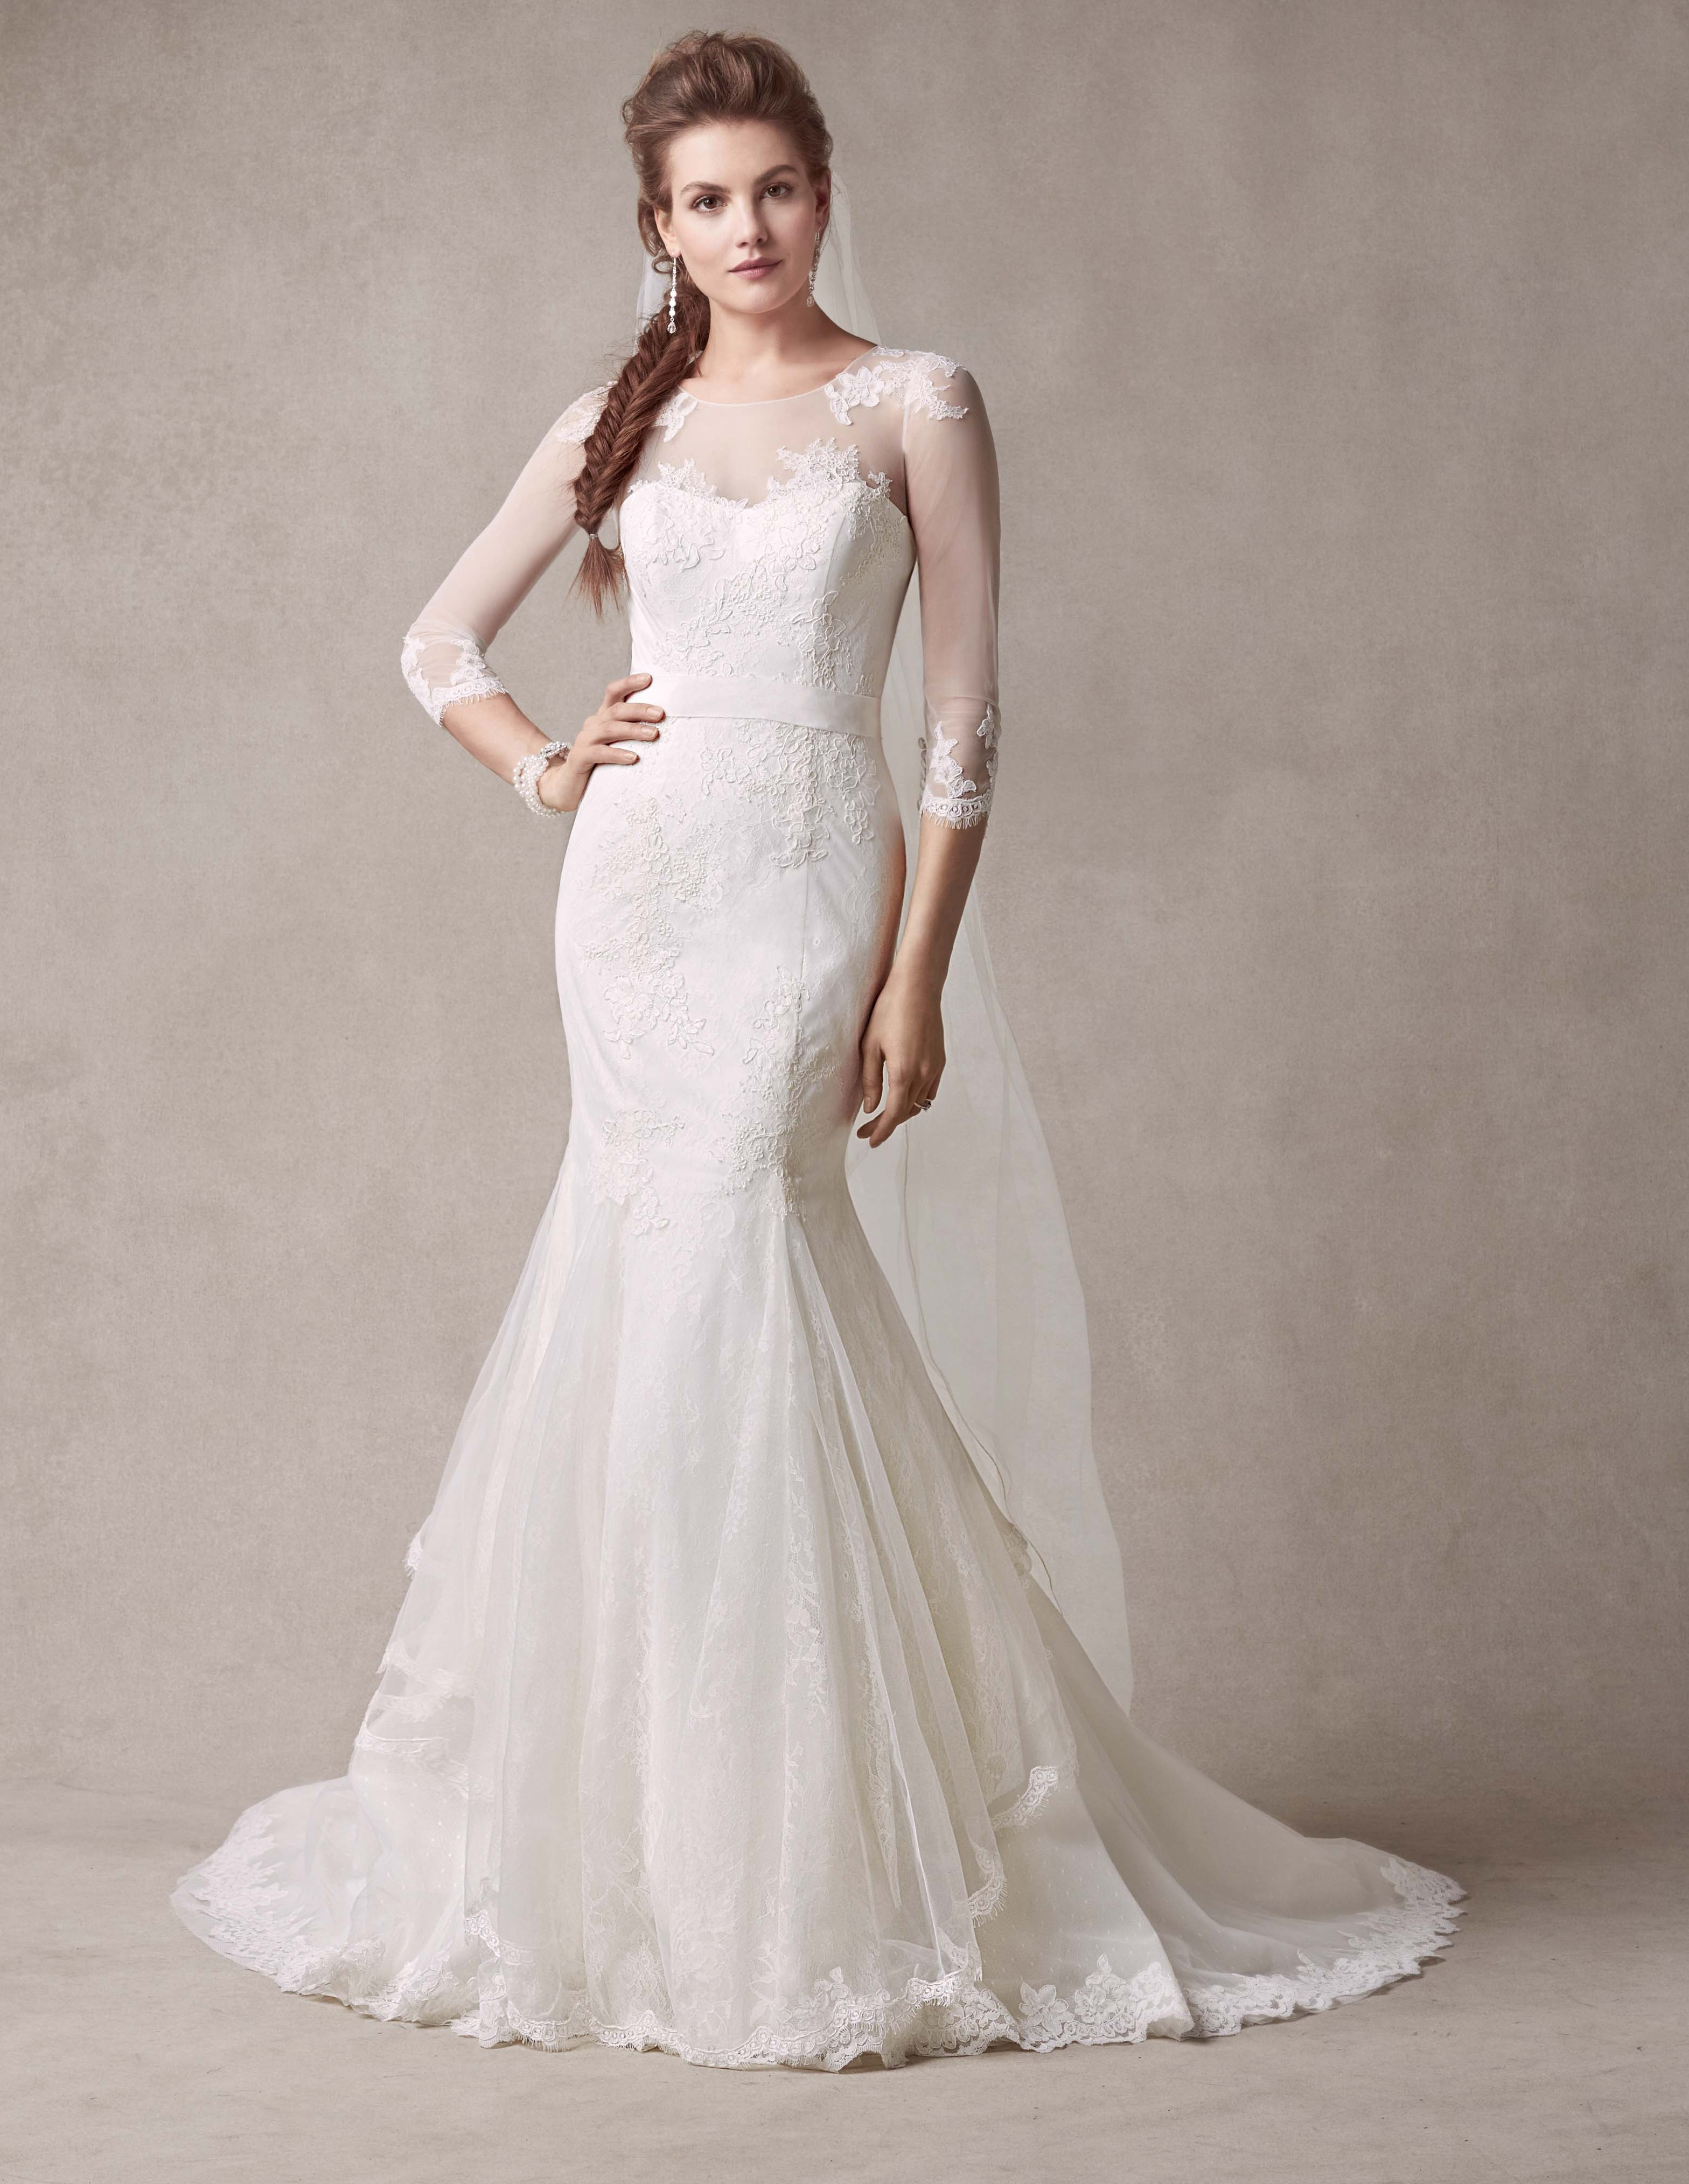 Selling melissa sweet wedding dress style ms251089 for Wedding dress with illusion sleeves